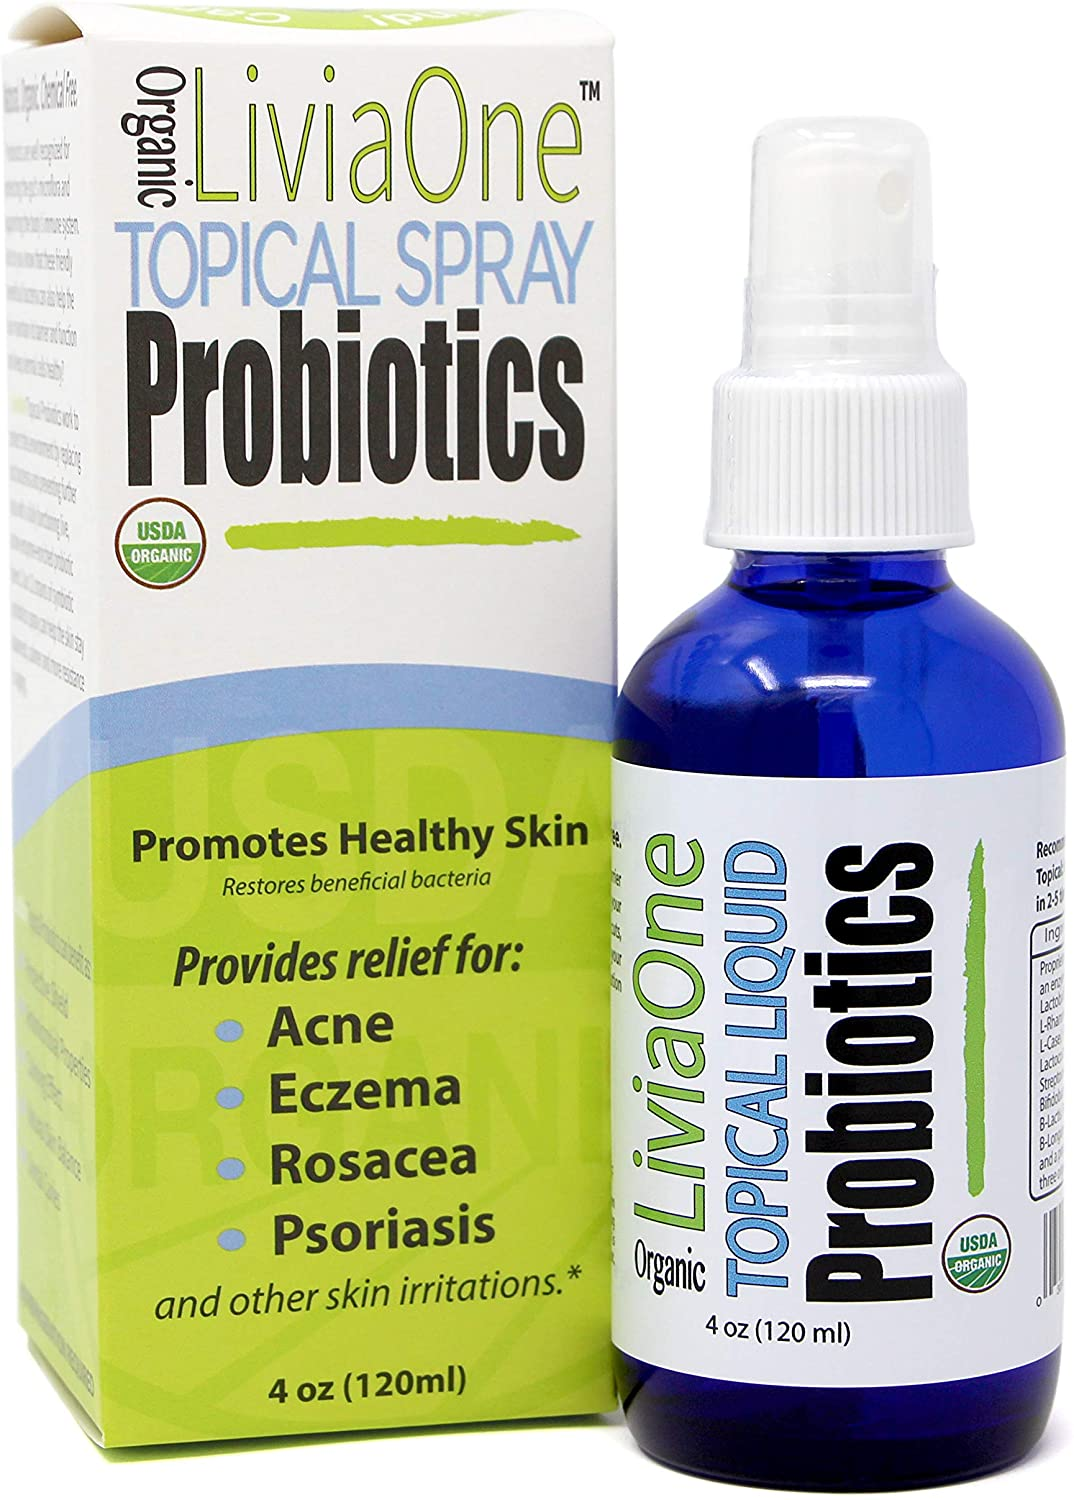 LiviaOne Topical Liquid Probiotics, USDA Certified Organic Probiotics - Gluten & Allergen Free. NO Refrigeration Required - LiviaOne Probiotics are Vegan, Non GMO and RAW